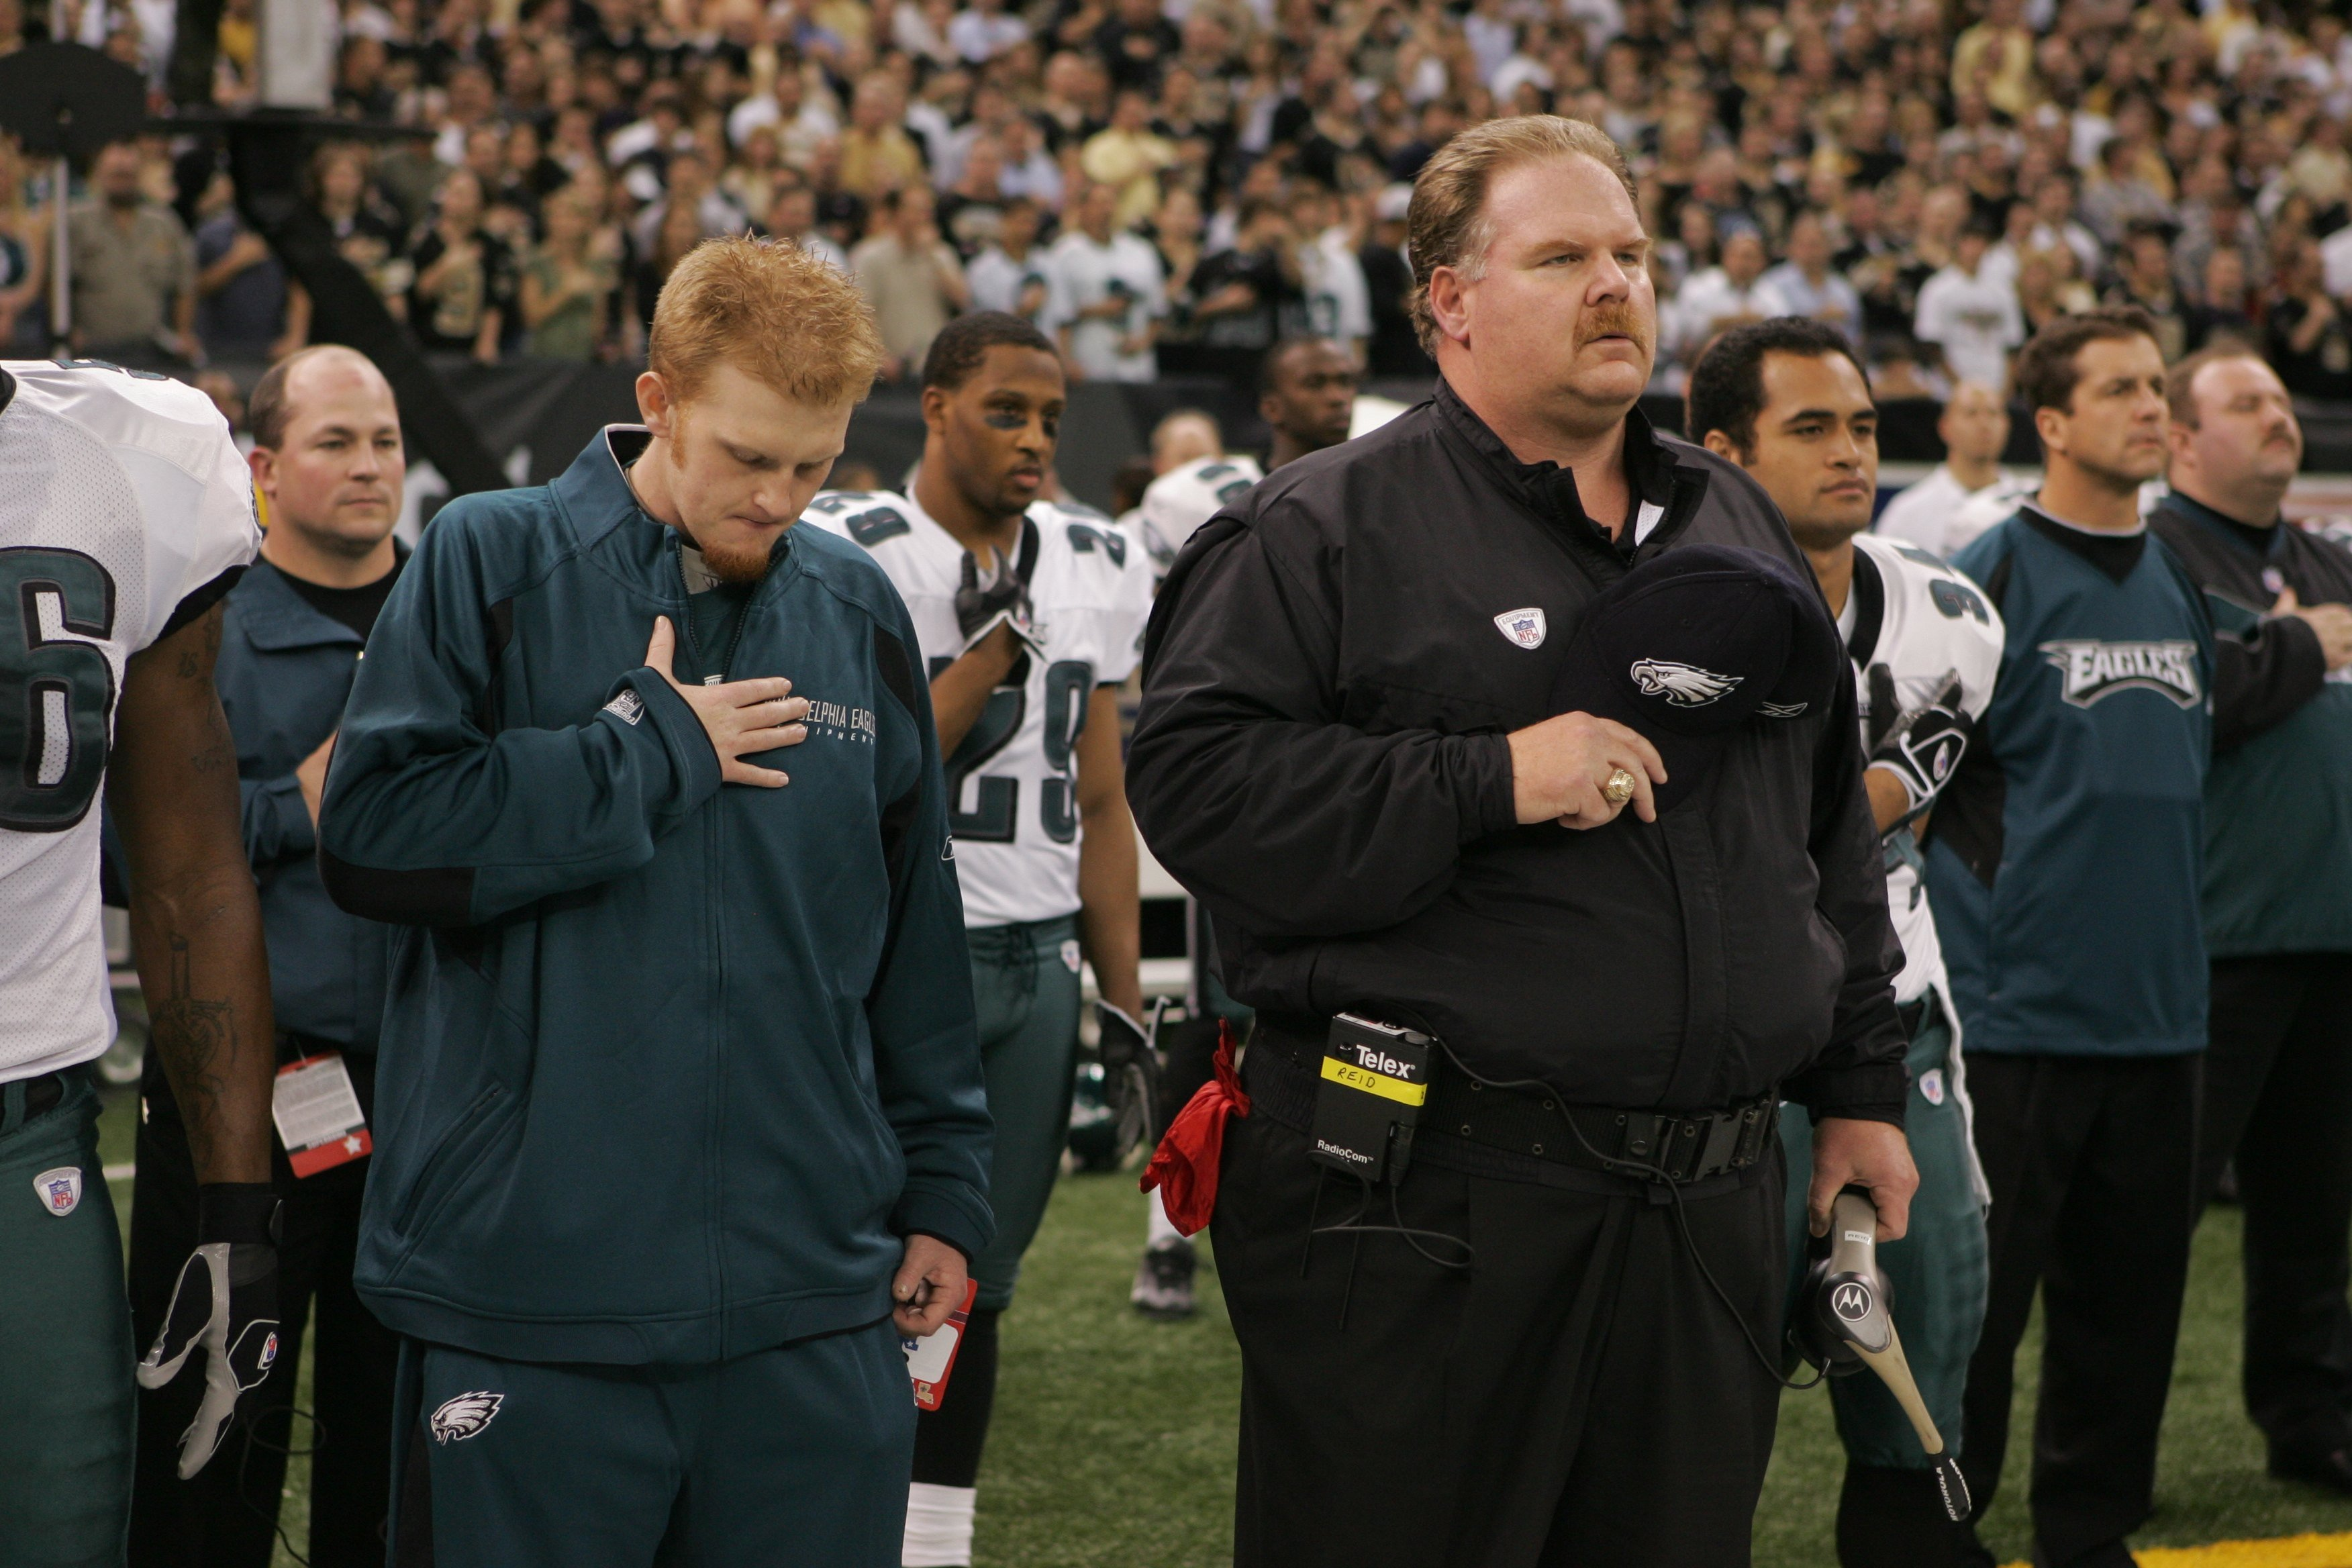 Father and son, Andy and Britt Reid during the national anthem at the Philadelphia Eagles vs New Orleans Saints game, January, 2007. | Photo: Getty Images.